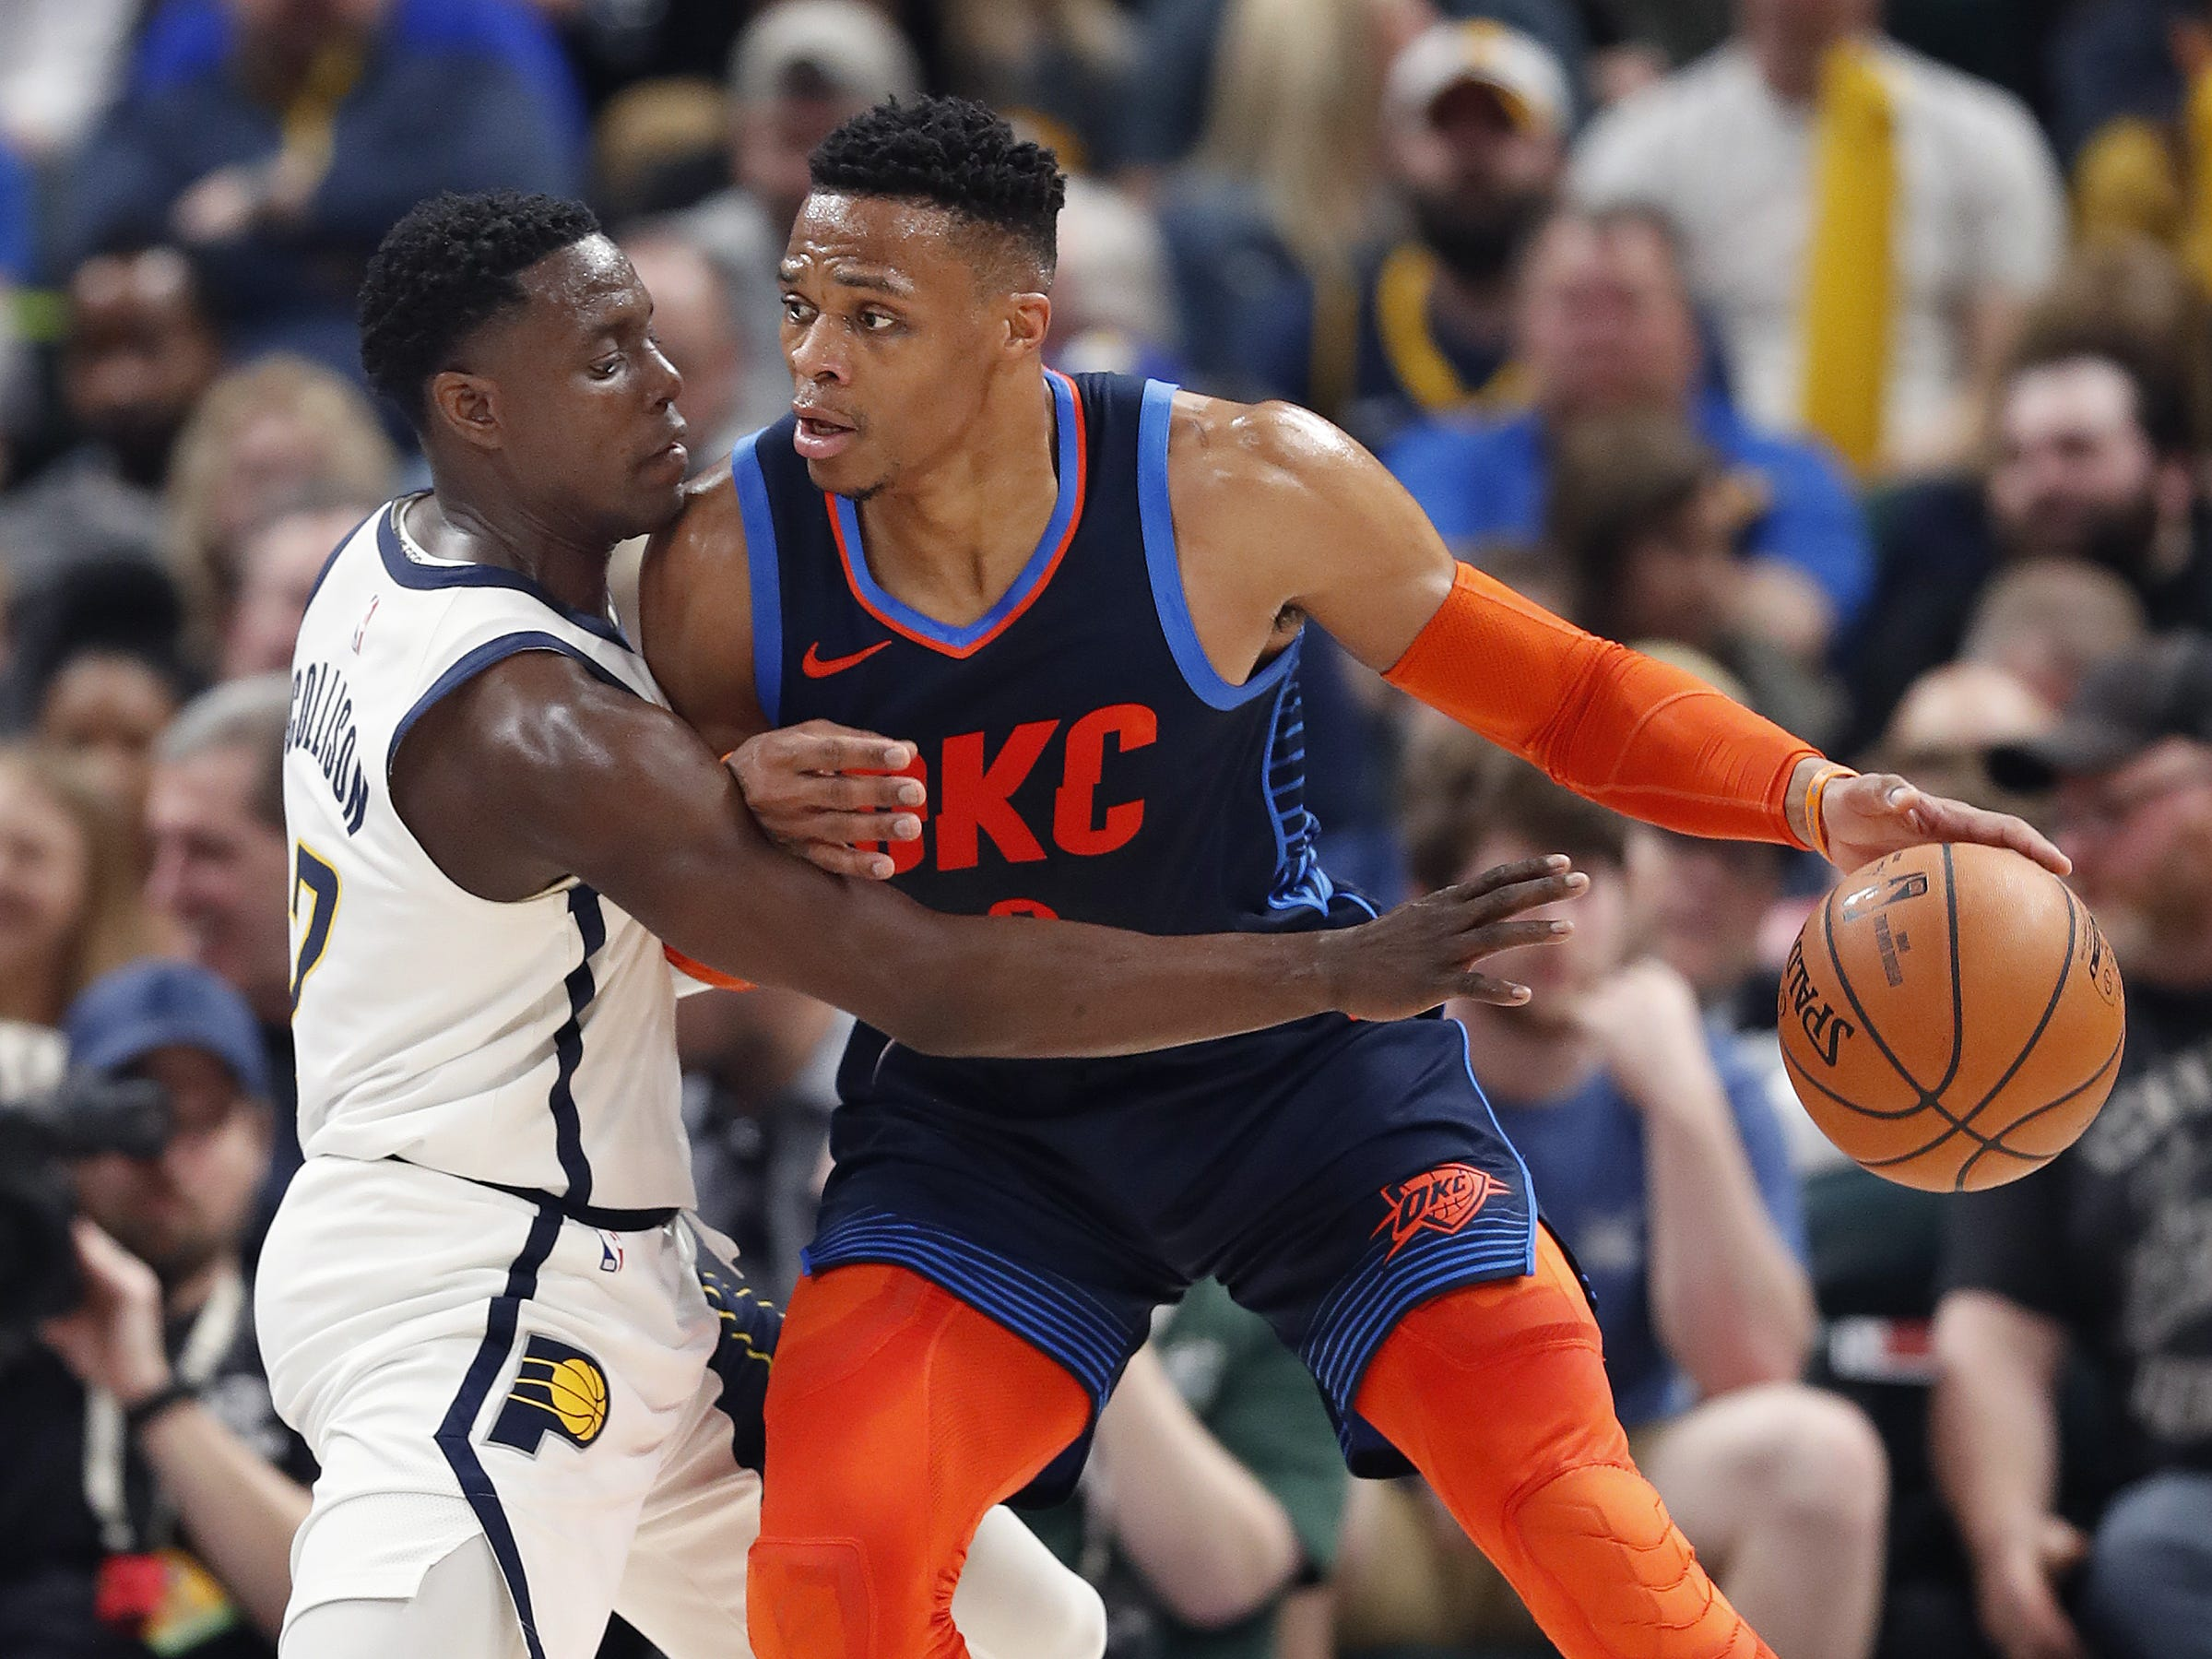 Indiana Pacers guard Darren Collison (2) defends Oklahoma City Thunder guard Russell Westbrook (0) in the first half of their game at Bankers Life Fieldhouse on Thursday, Mar. 14, 2019.